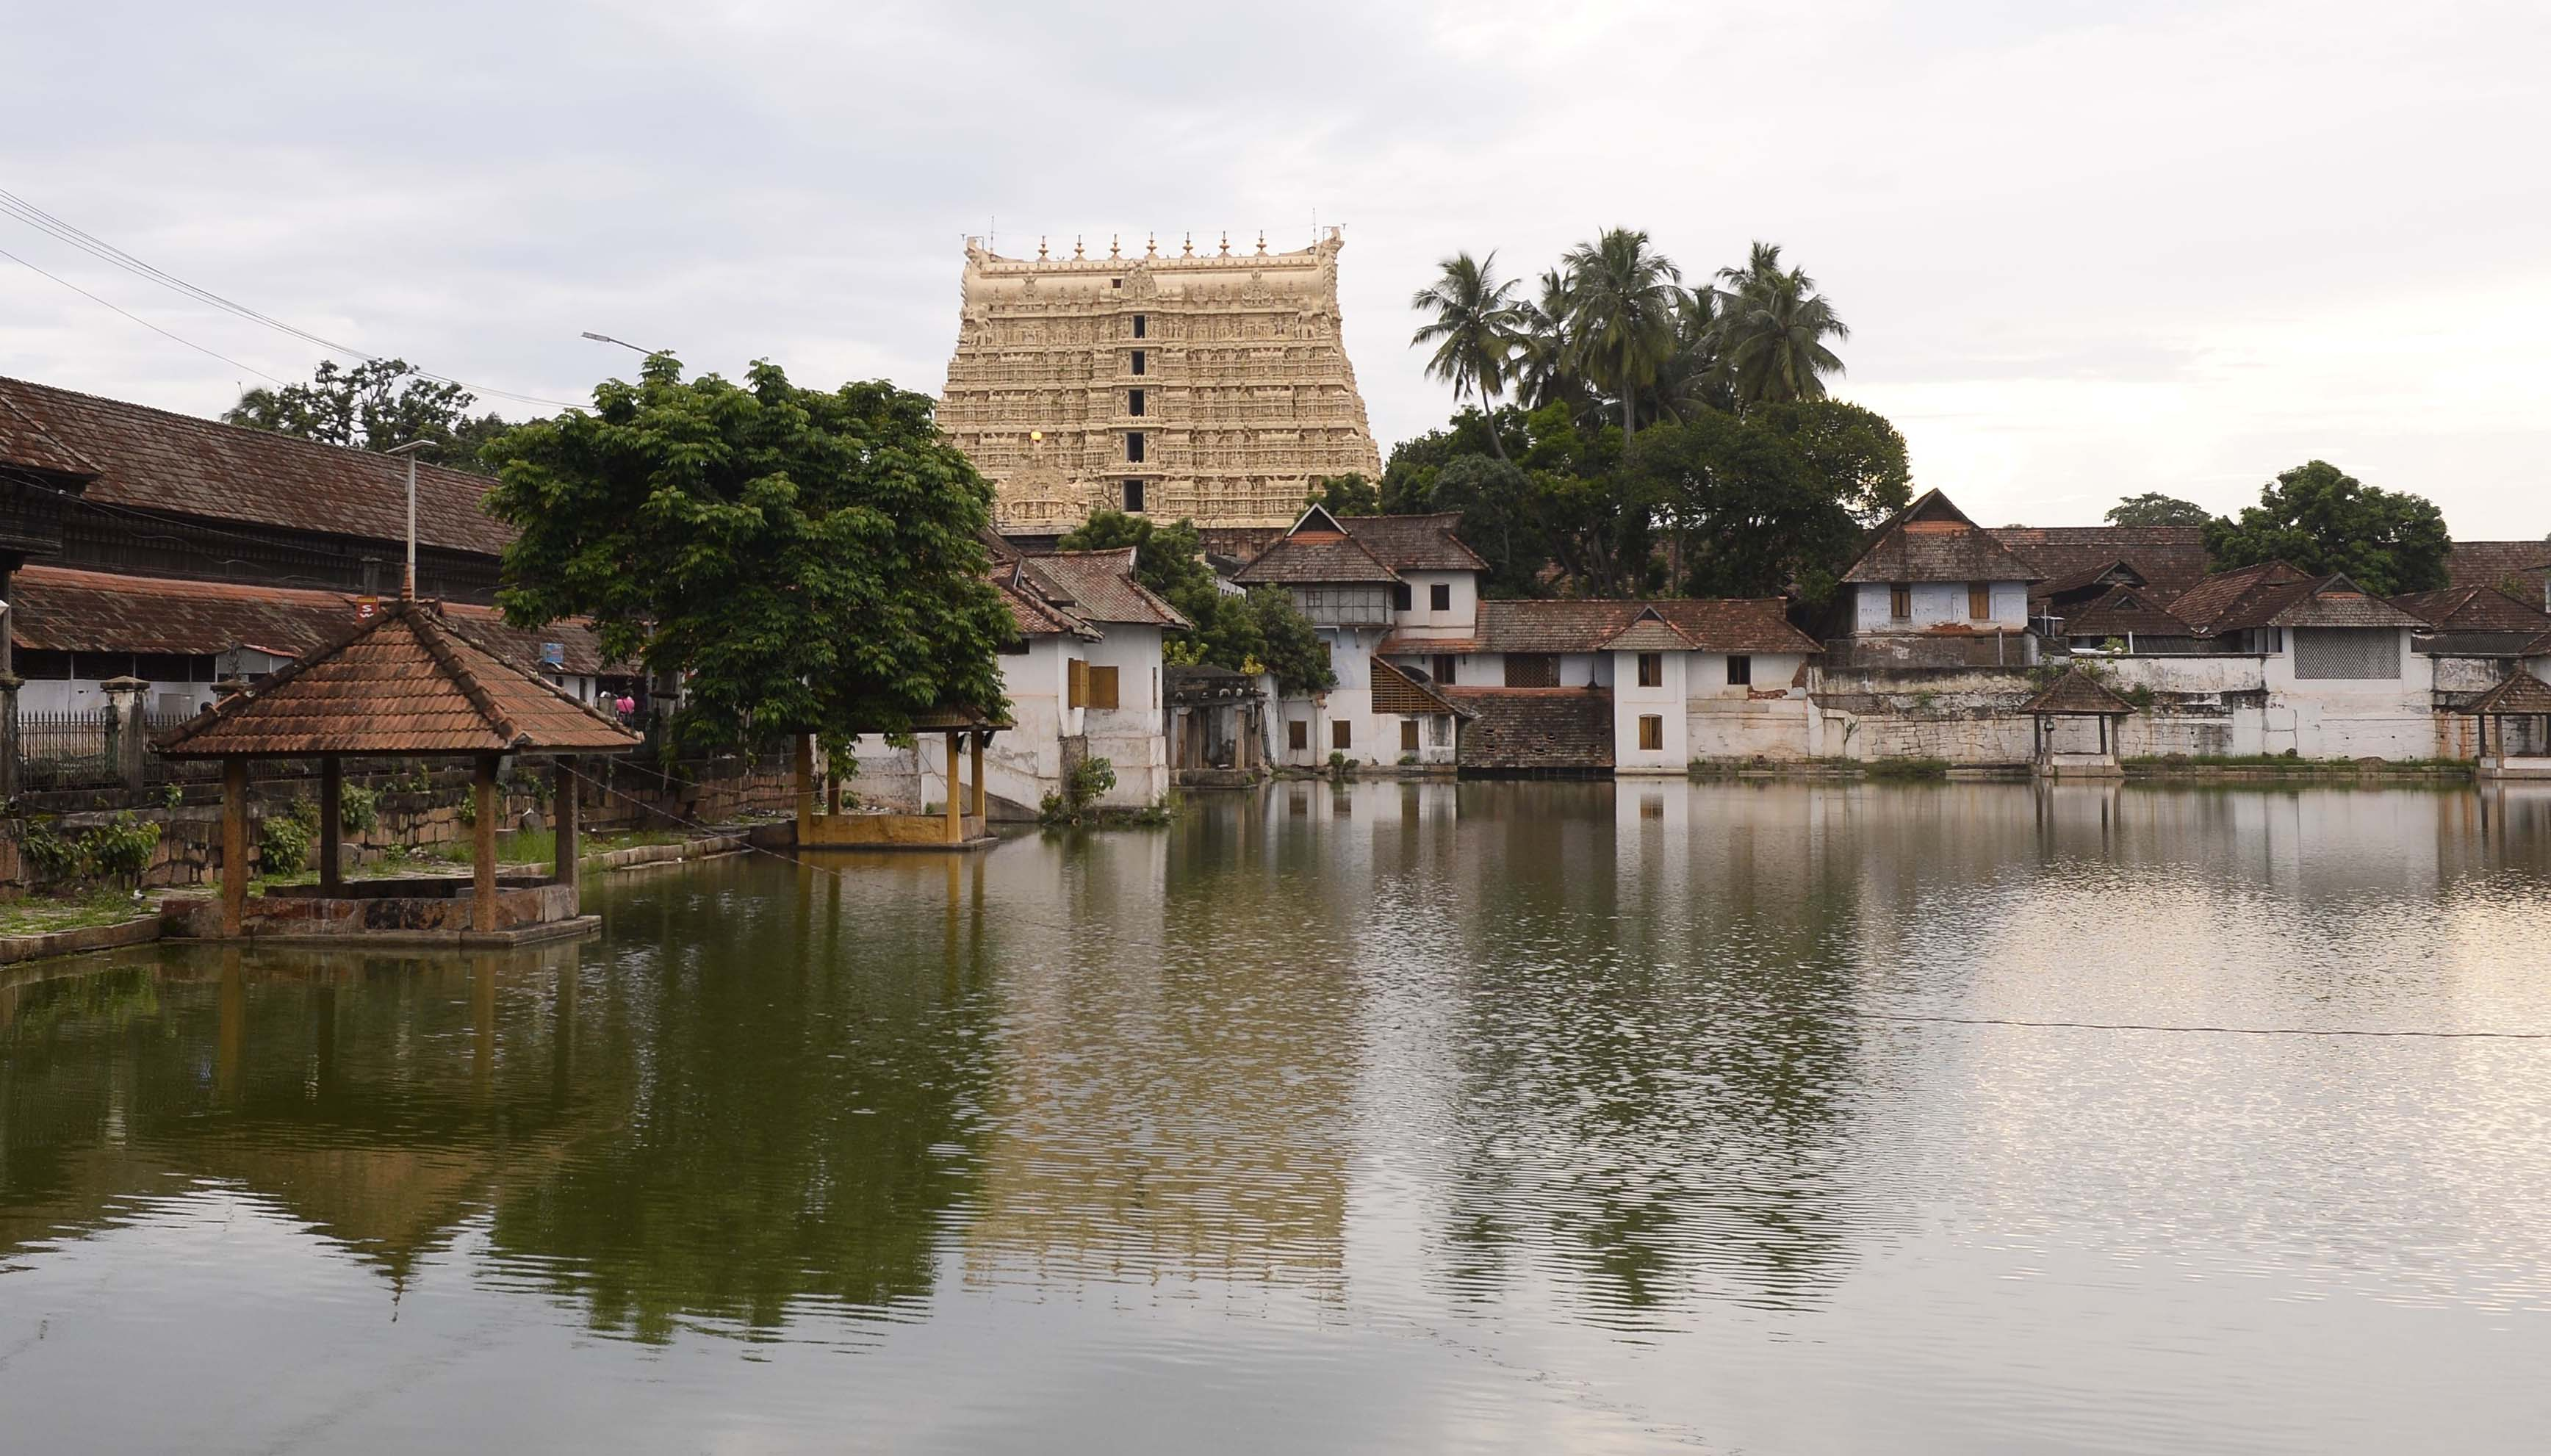 In limbo a kerala temple and its chamber of secrets - Chambr kochi ...